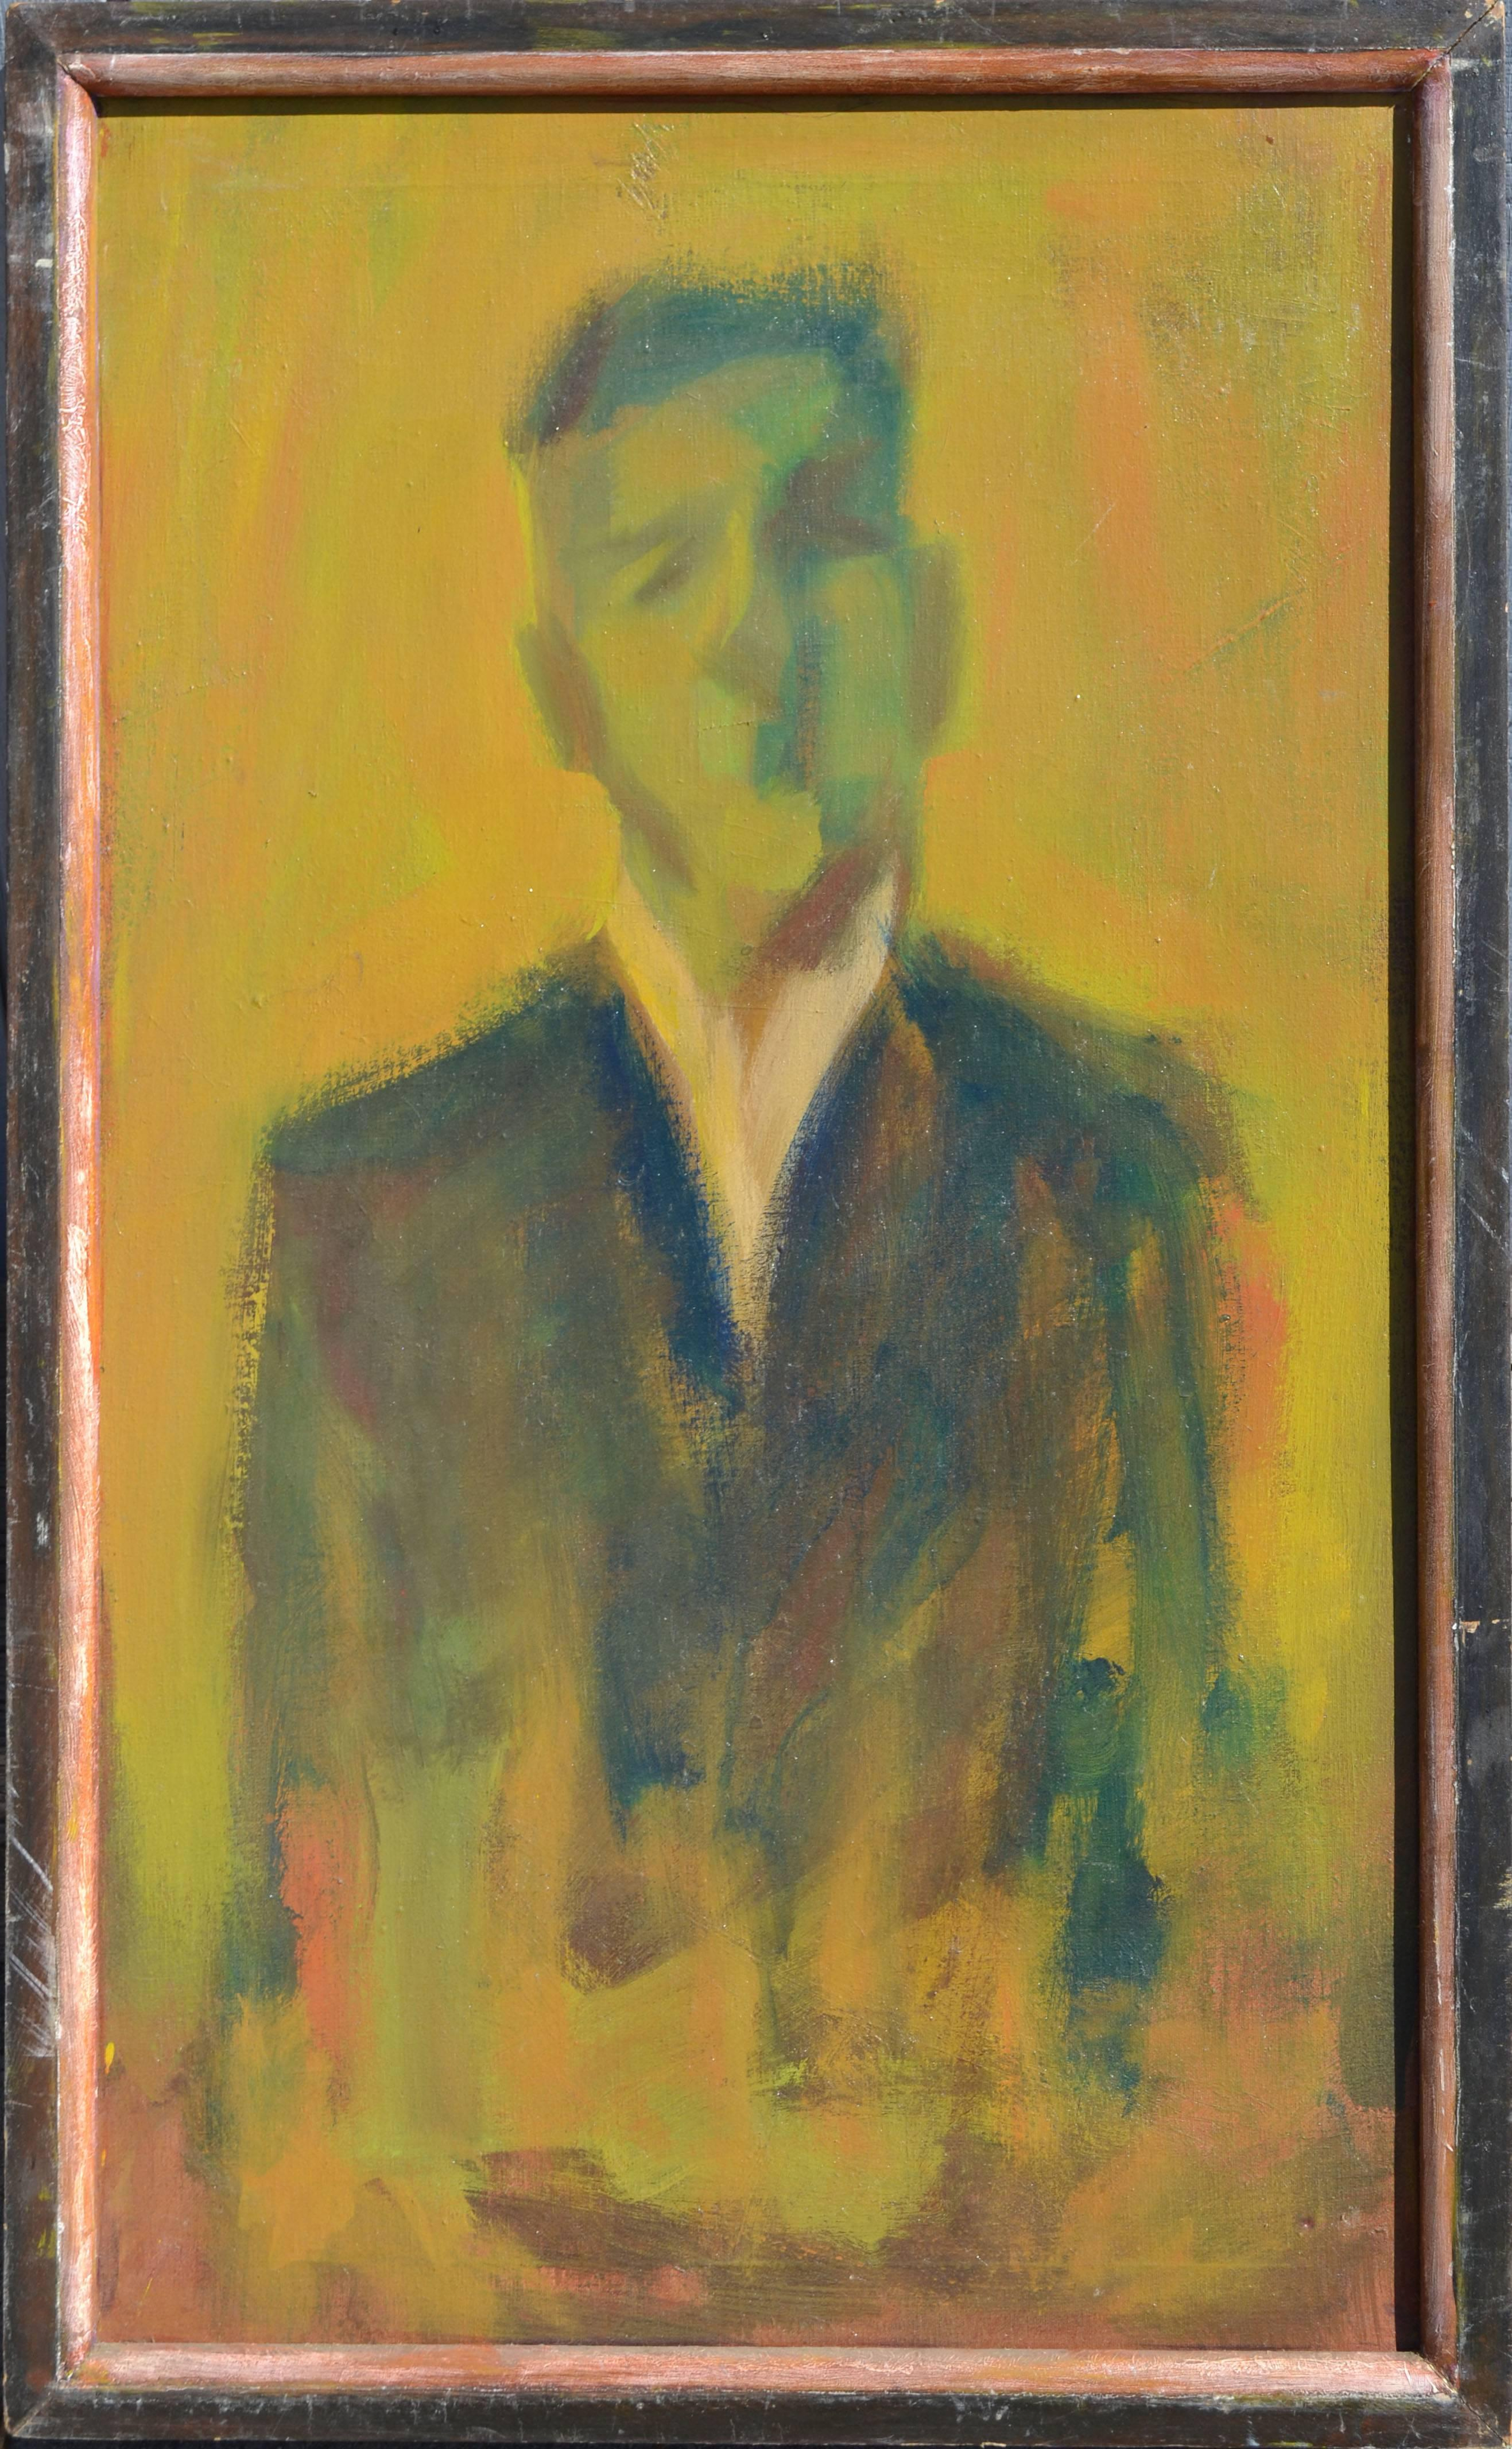 Mid Century Modern Abstracted Figurative - Man in Suit